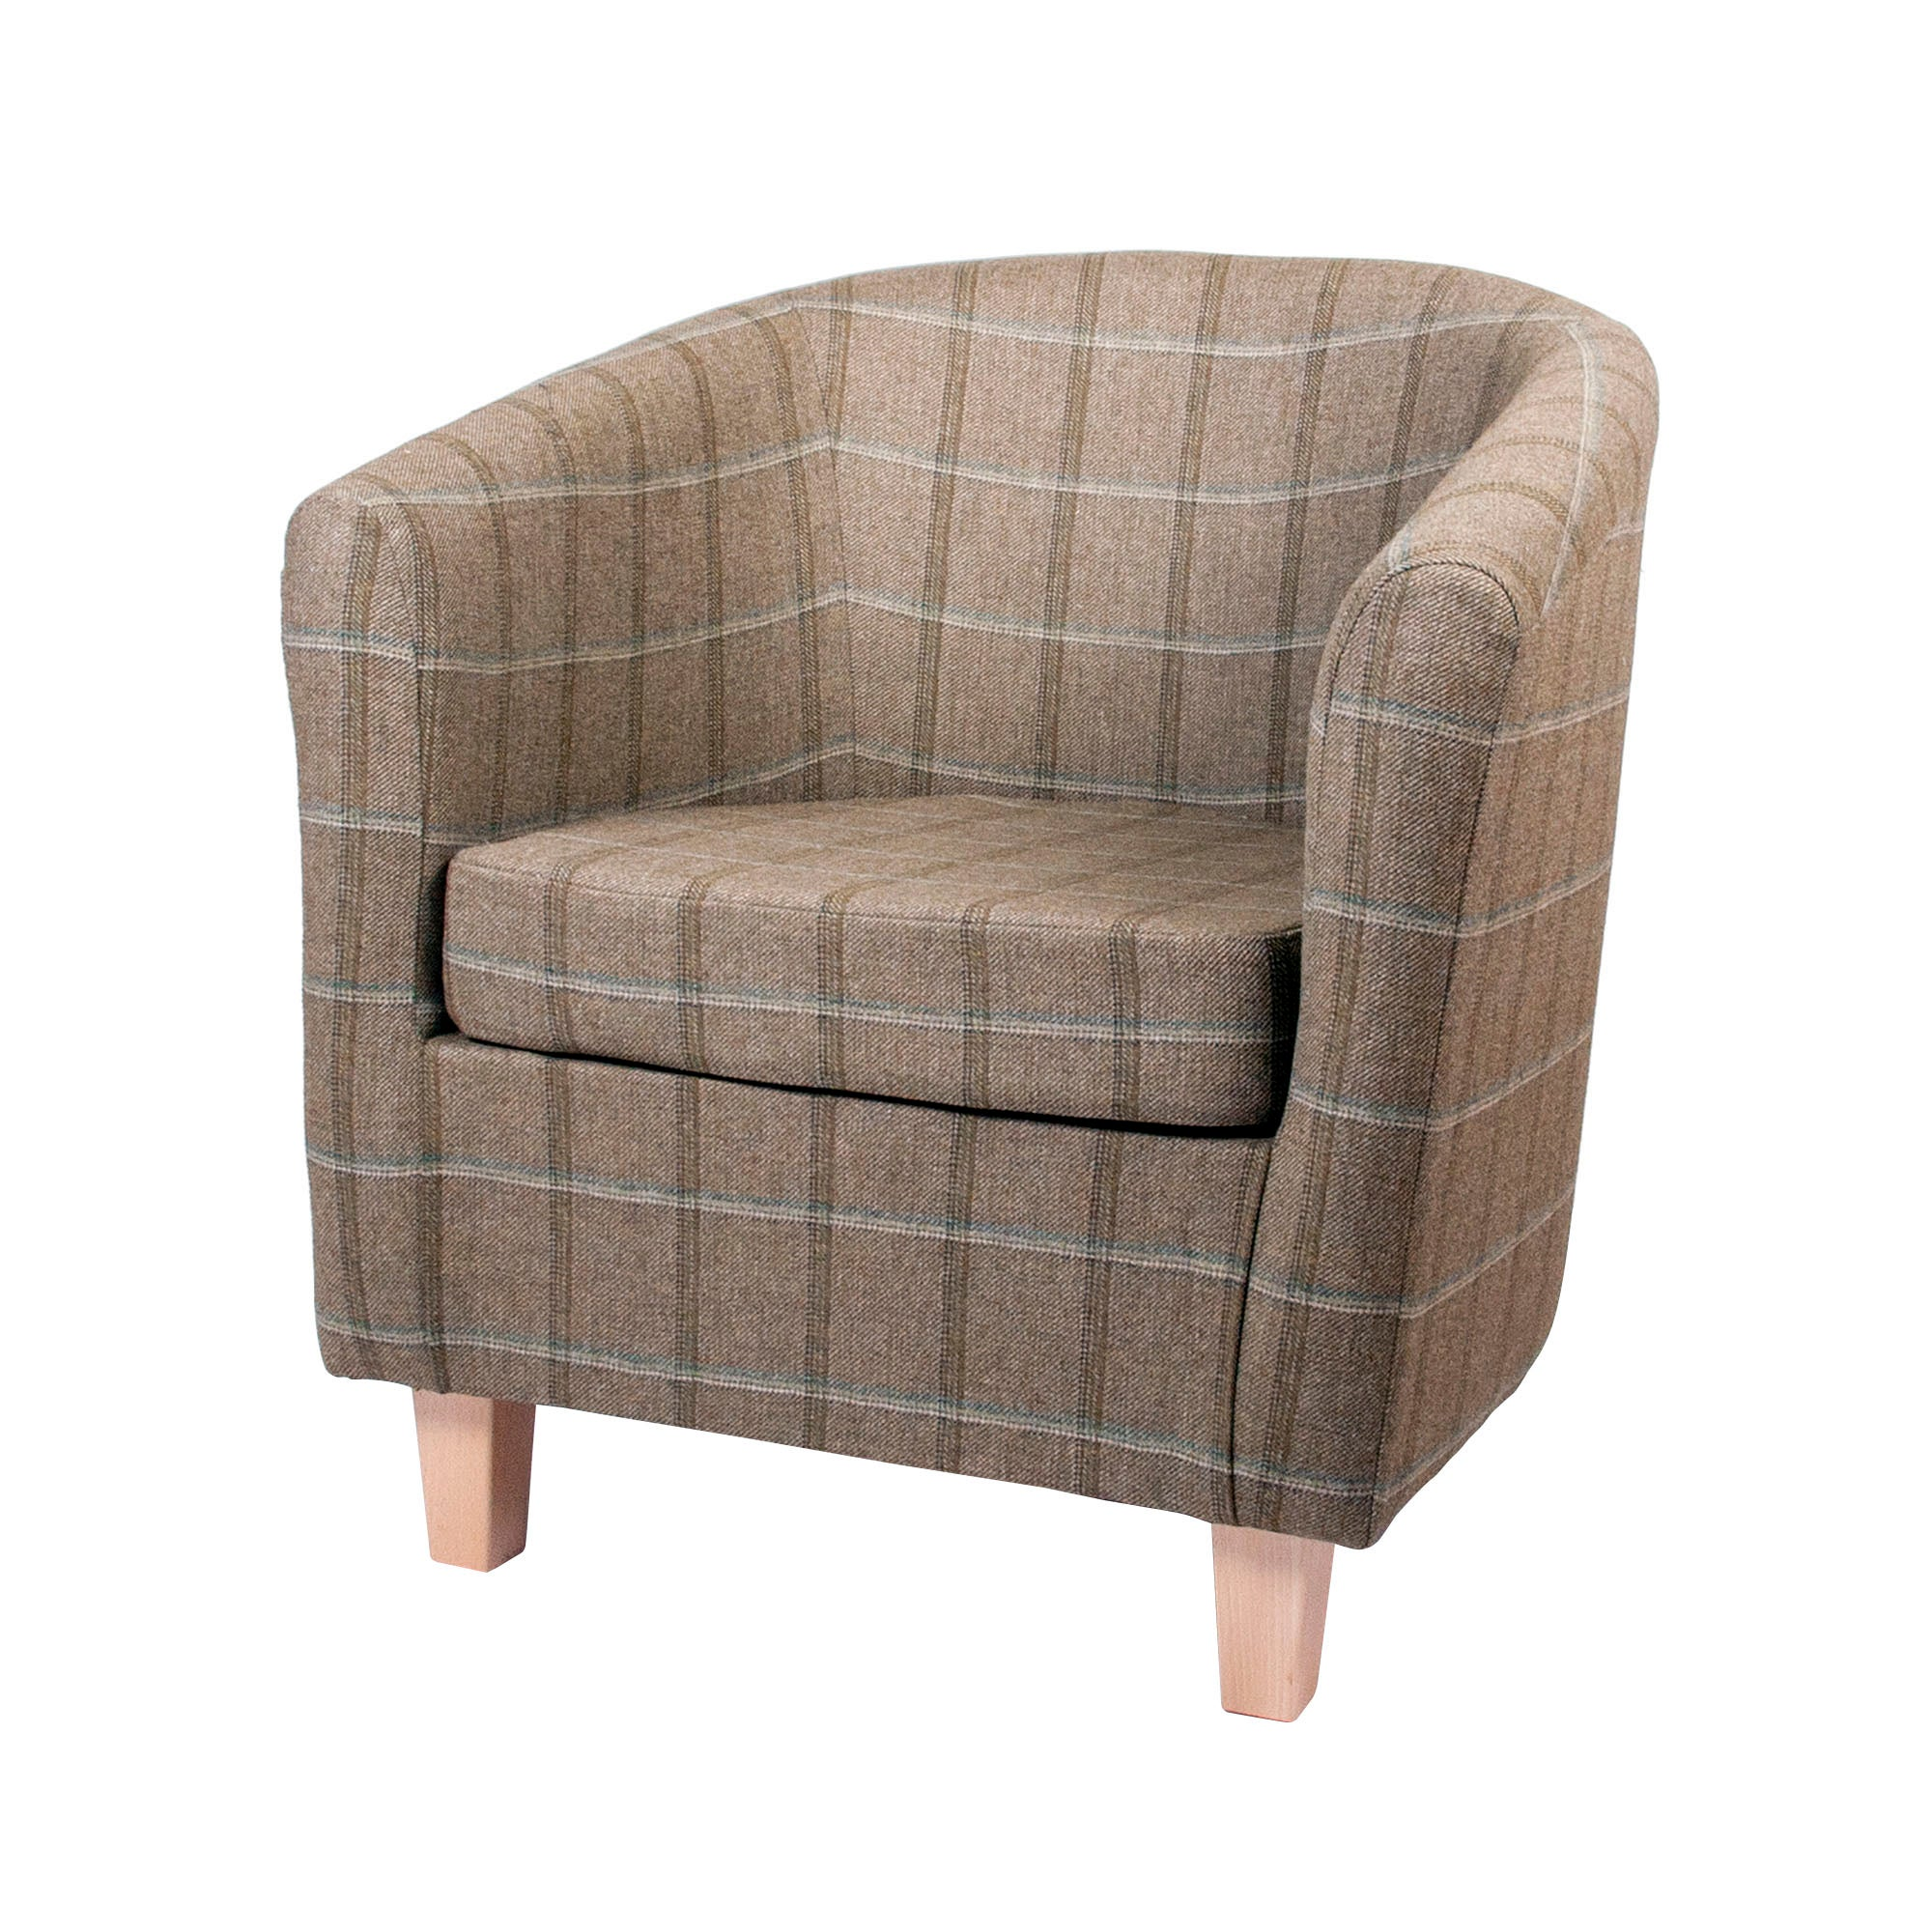 buy cheap tub chair compare chairs prices for best uk deals. Black Bedroom Furniture Sets. Home Design Ideas